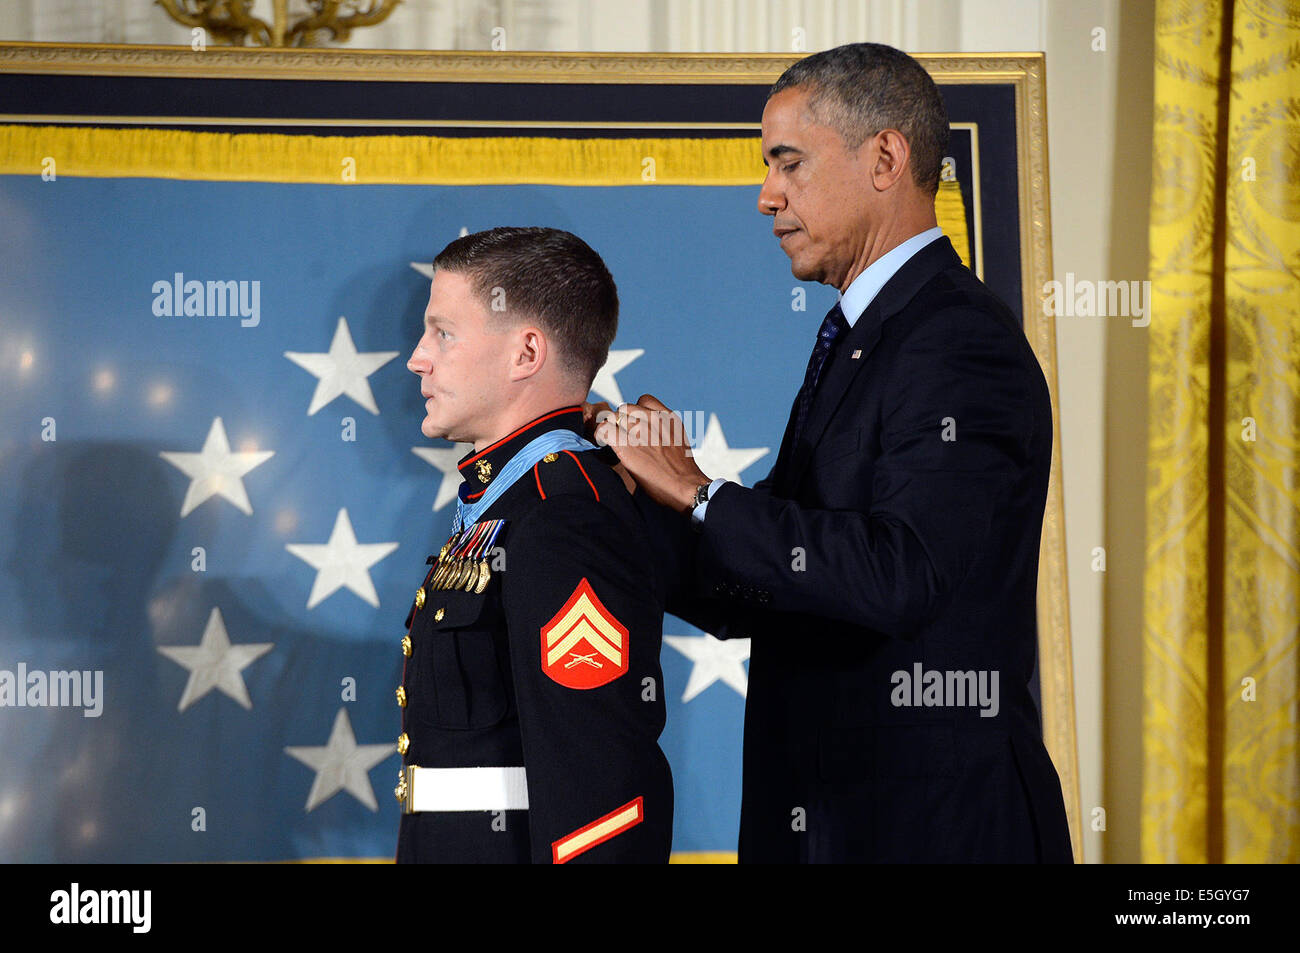 President Barack Obama, right, awards the Medal of Honor to retired U.S. Marine Corps Cpl. William Carpenter during Stock Photo